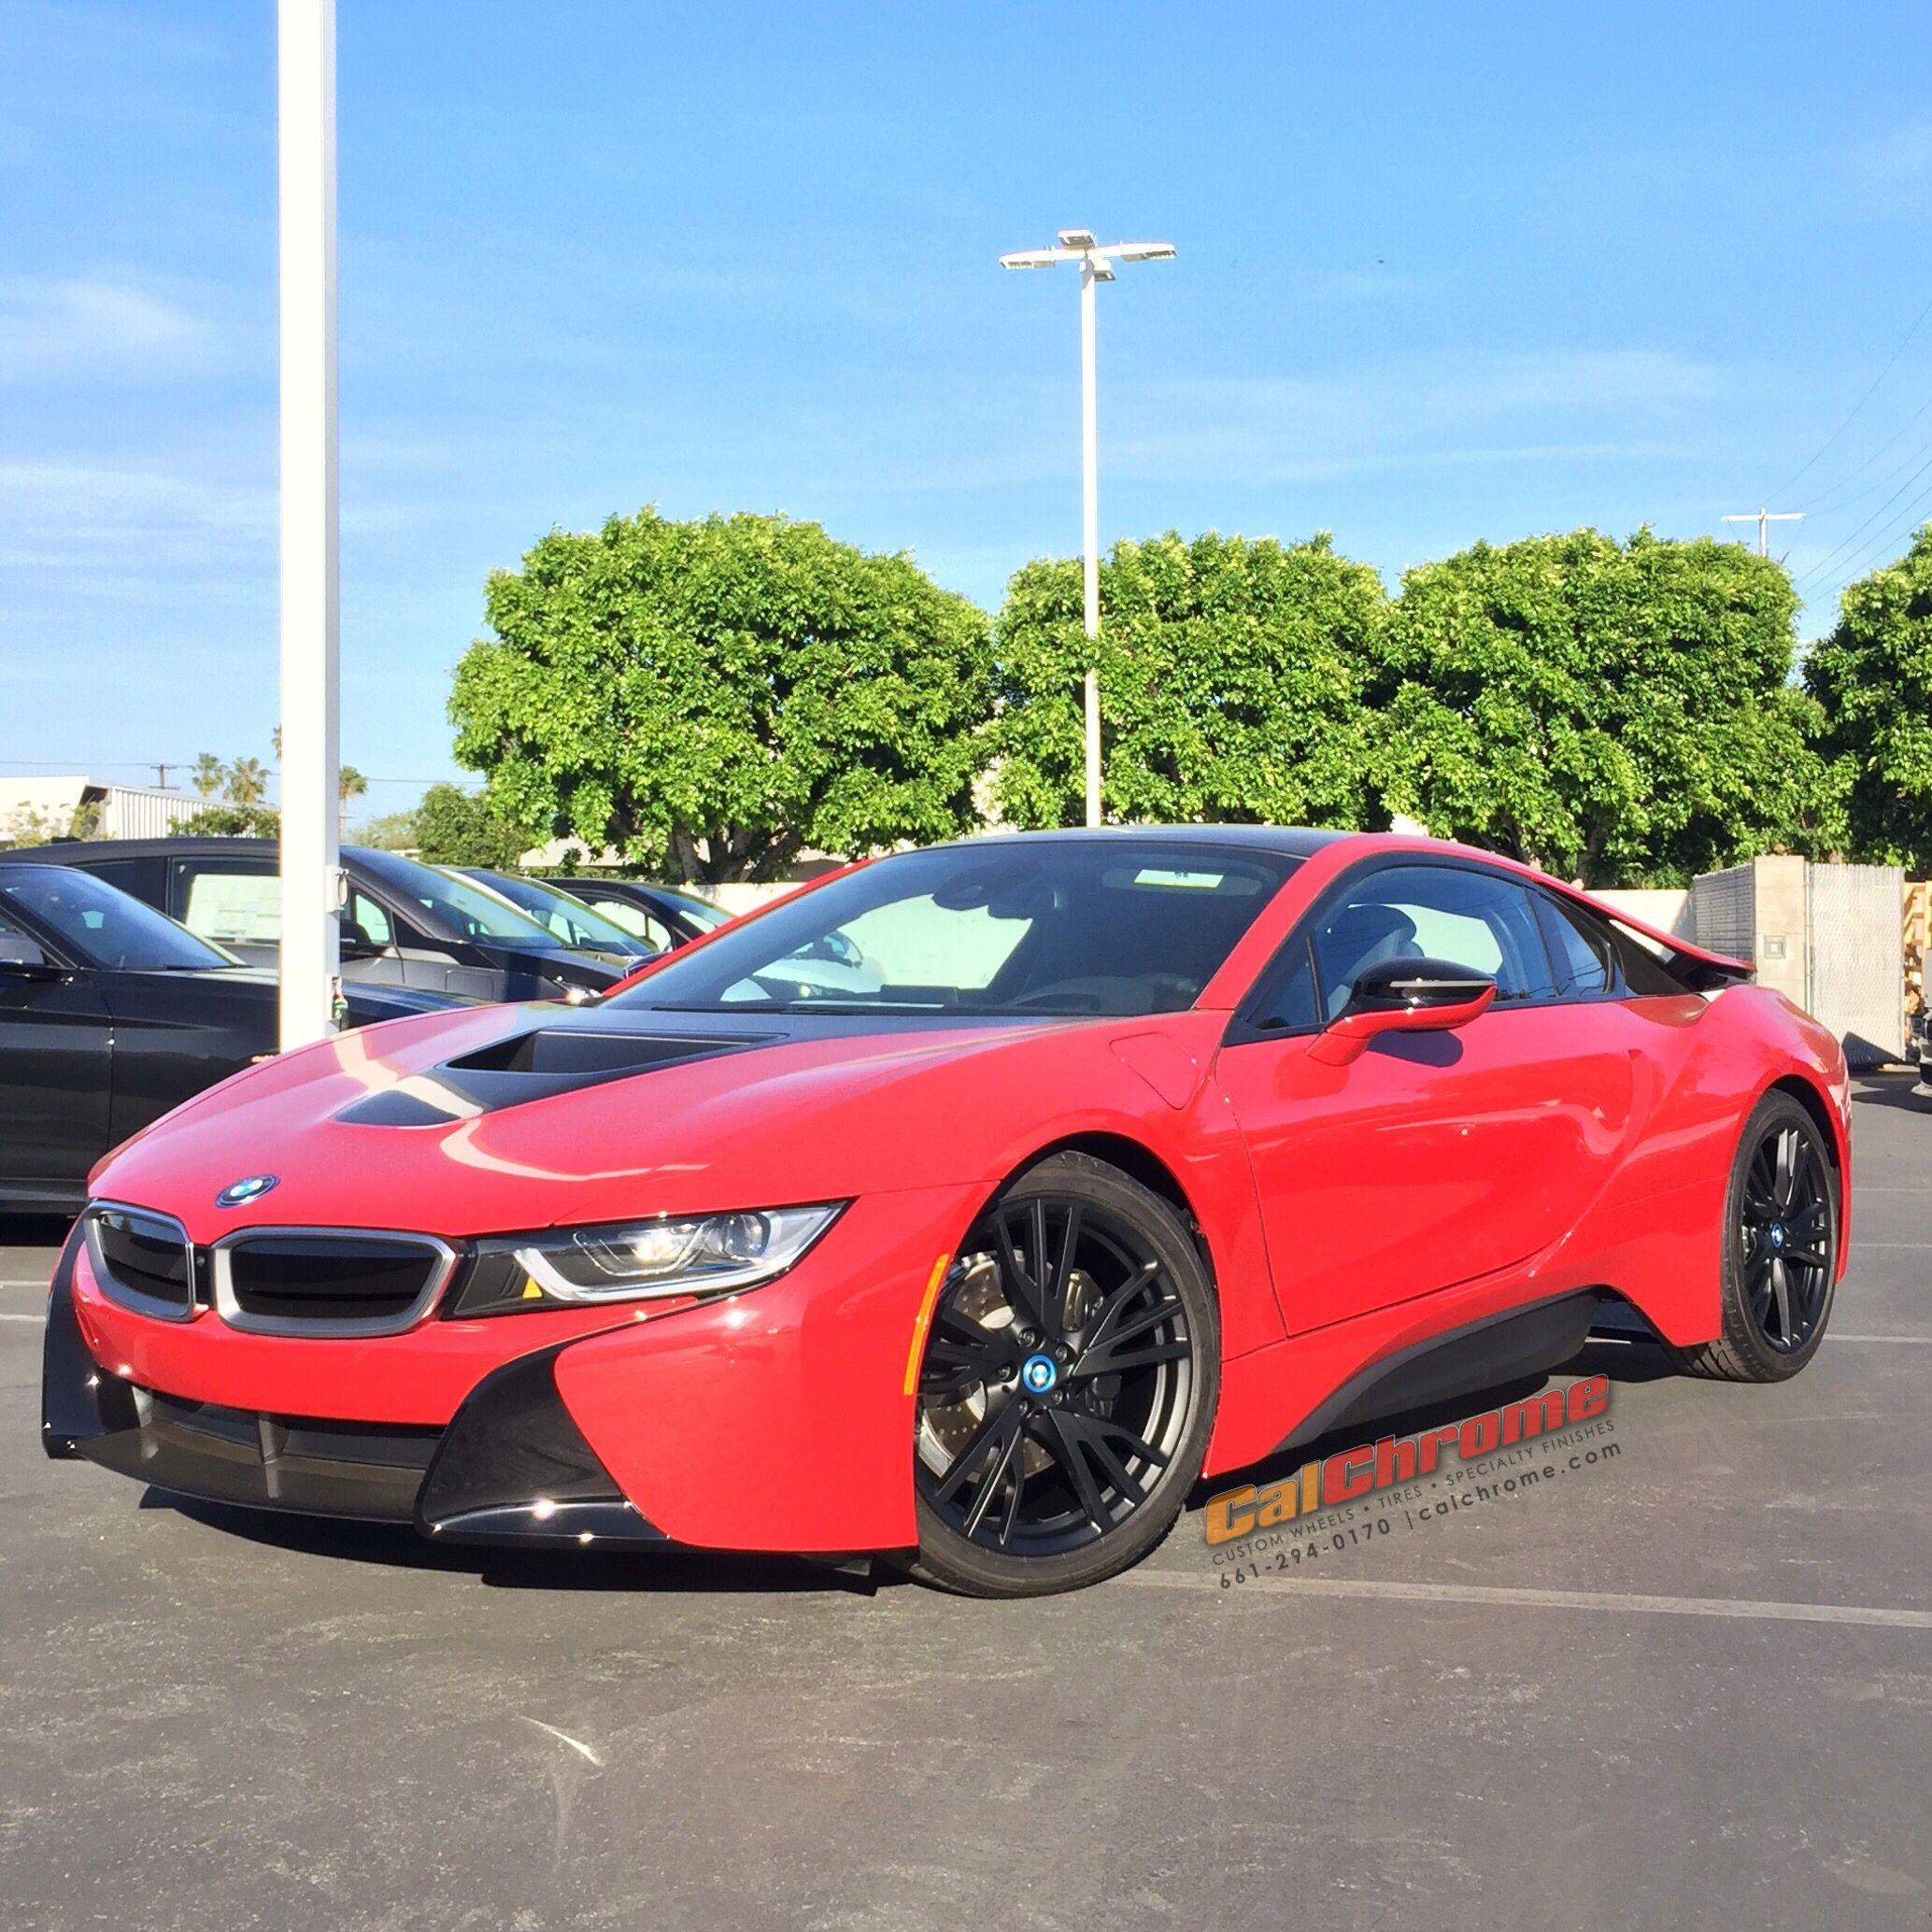 2017 Bmw I8 On Matte Black Wheels Wheelwednesday Matteblackwheels